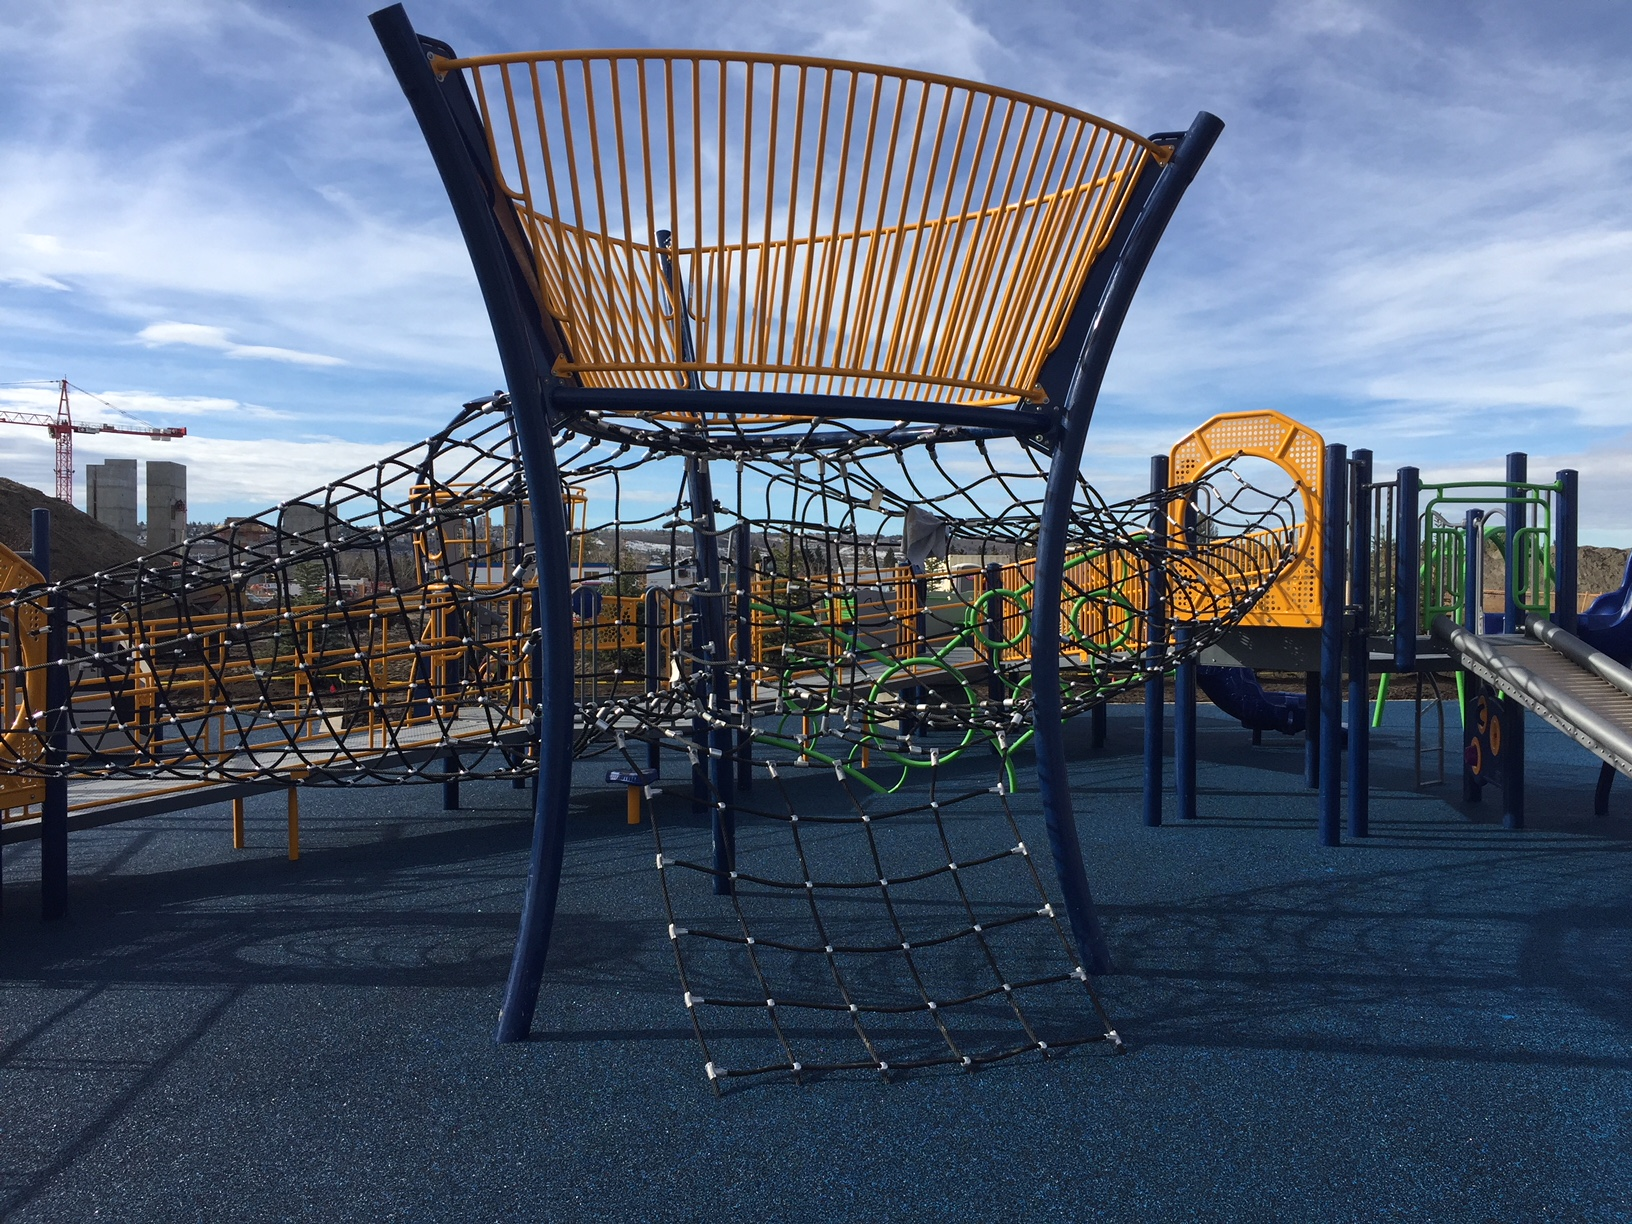 The Benefits of National Recognition for Your Playground: Why Build a Playground to National Demonstration Site Standards